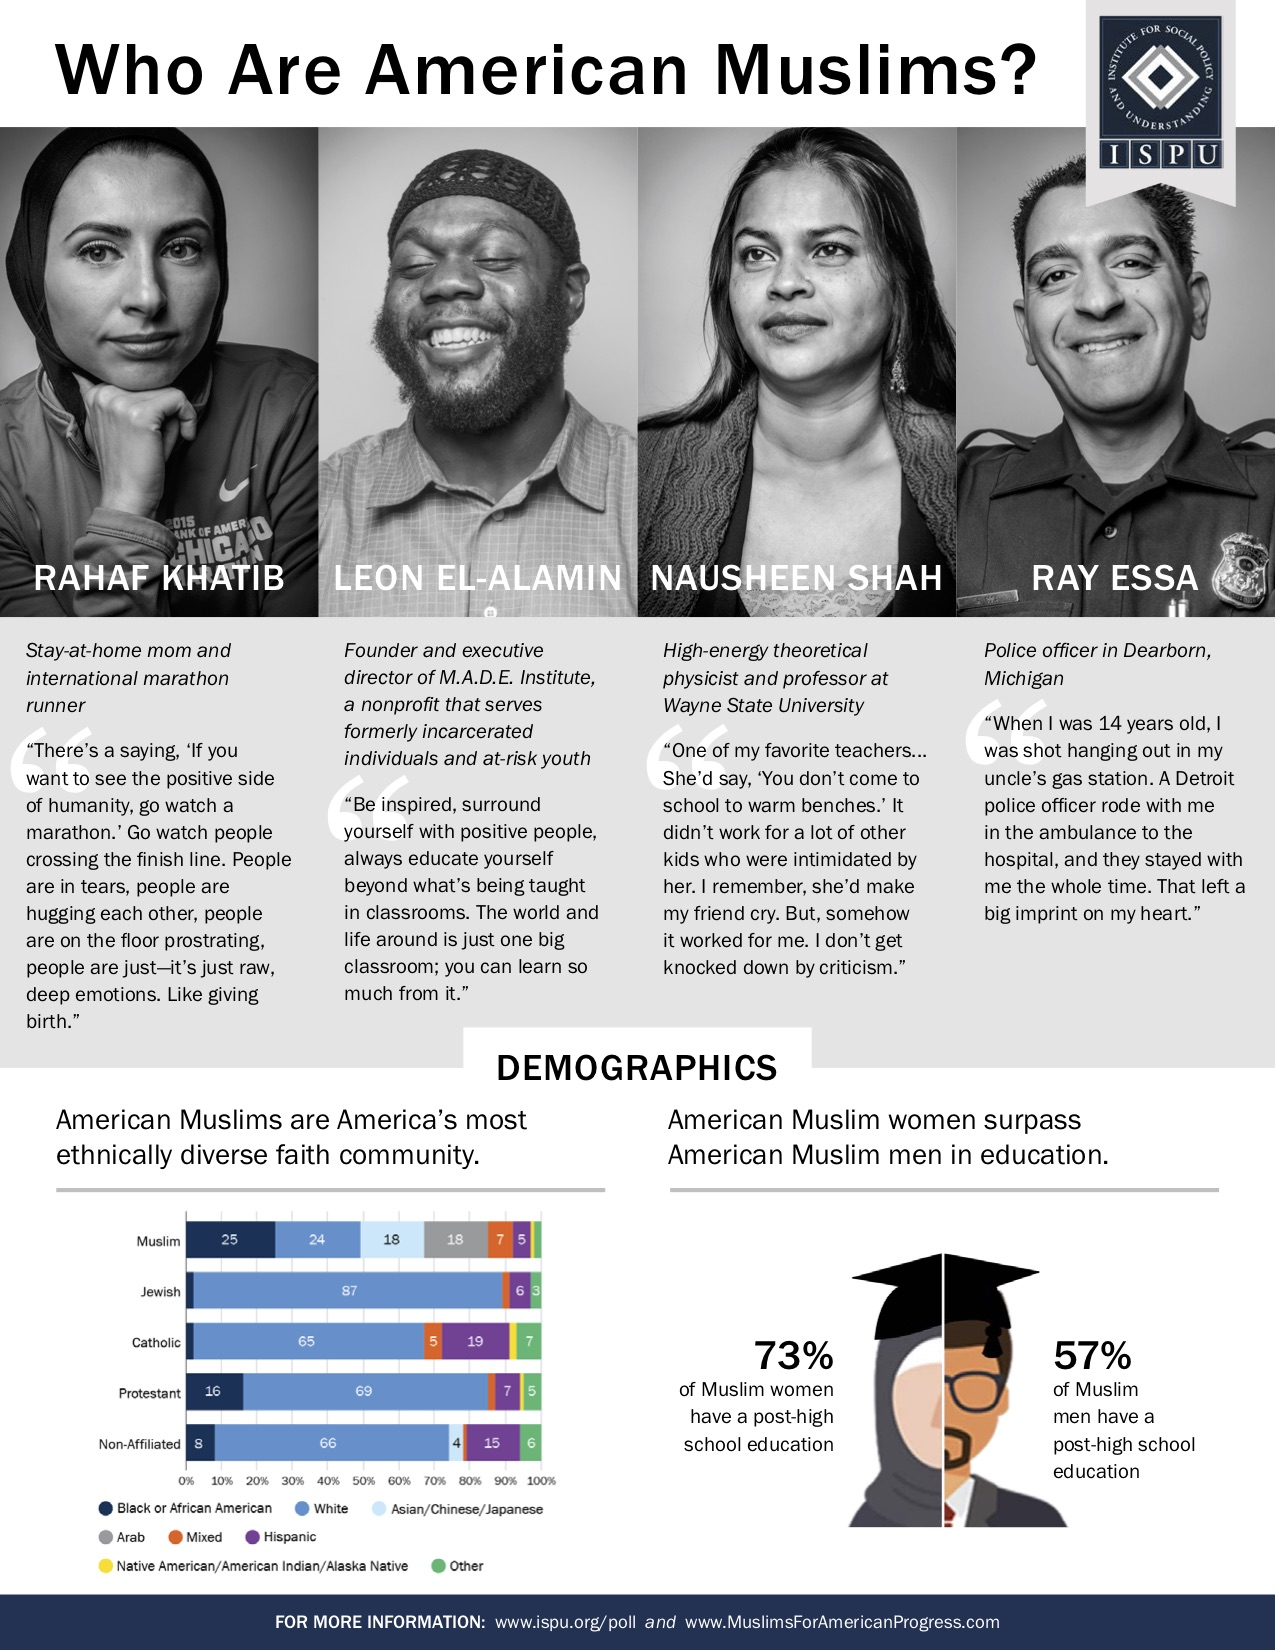 Who Are American Muslims infographic